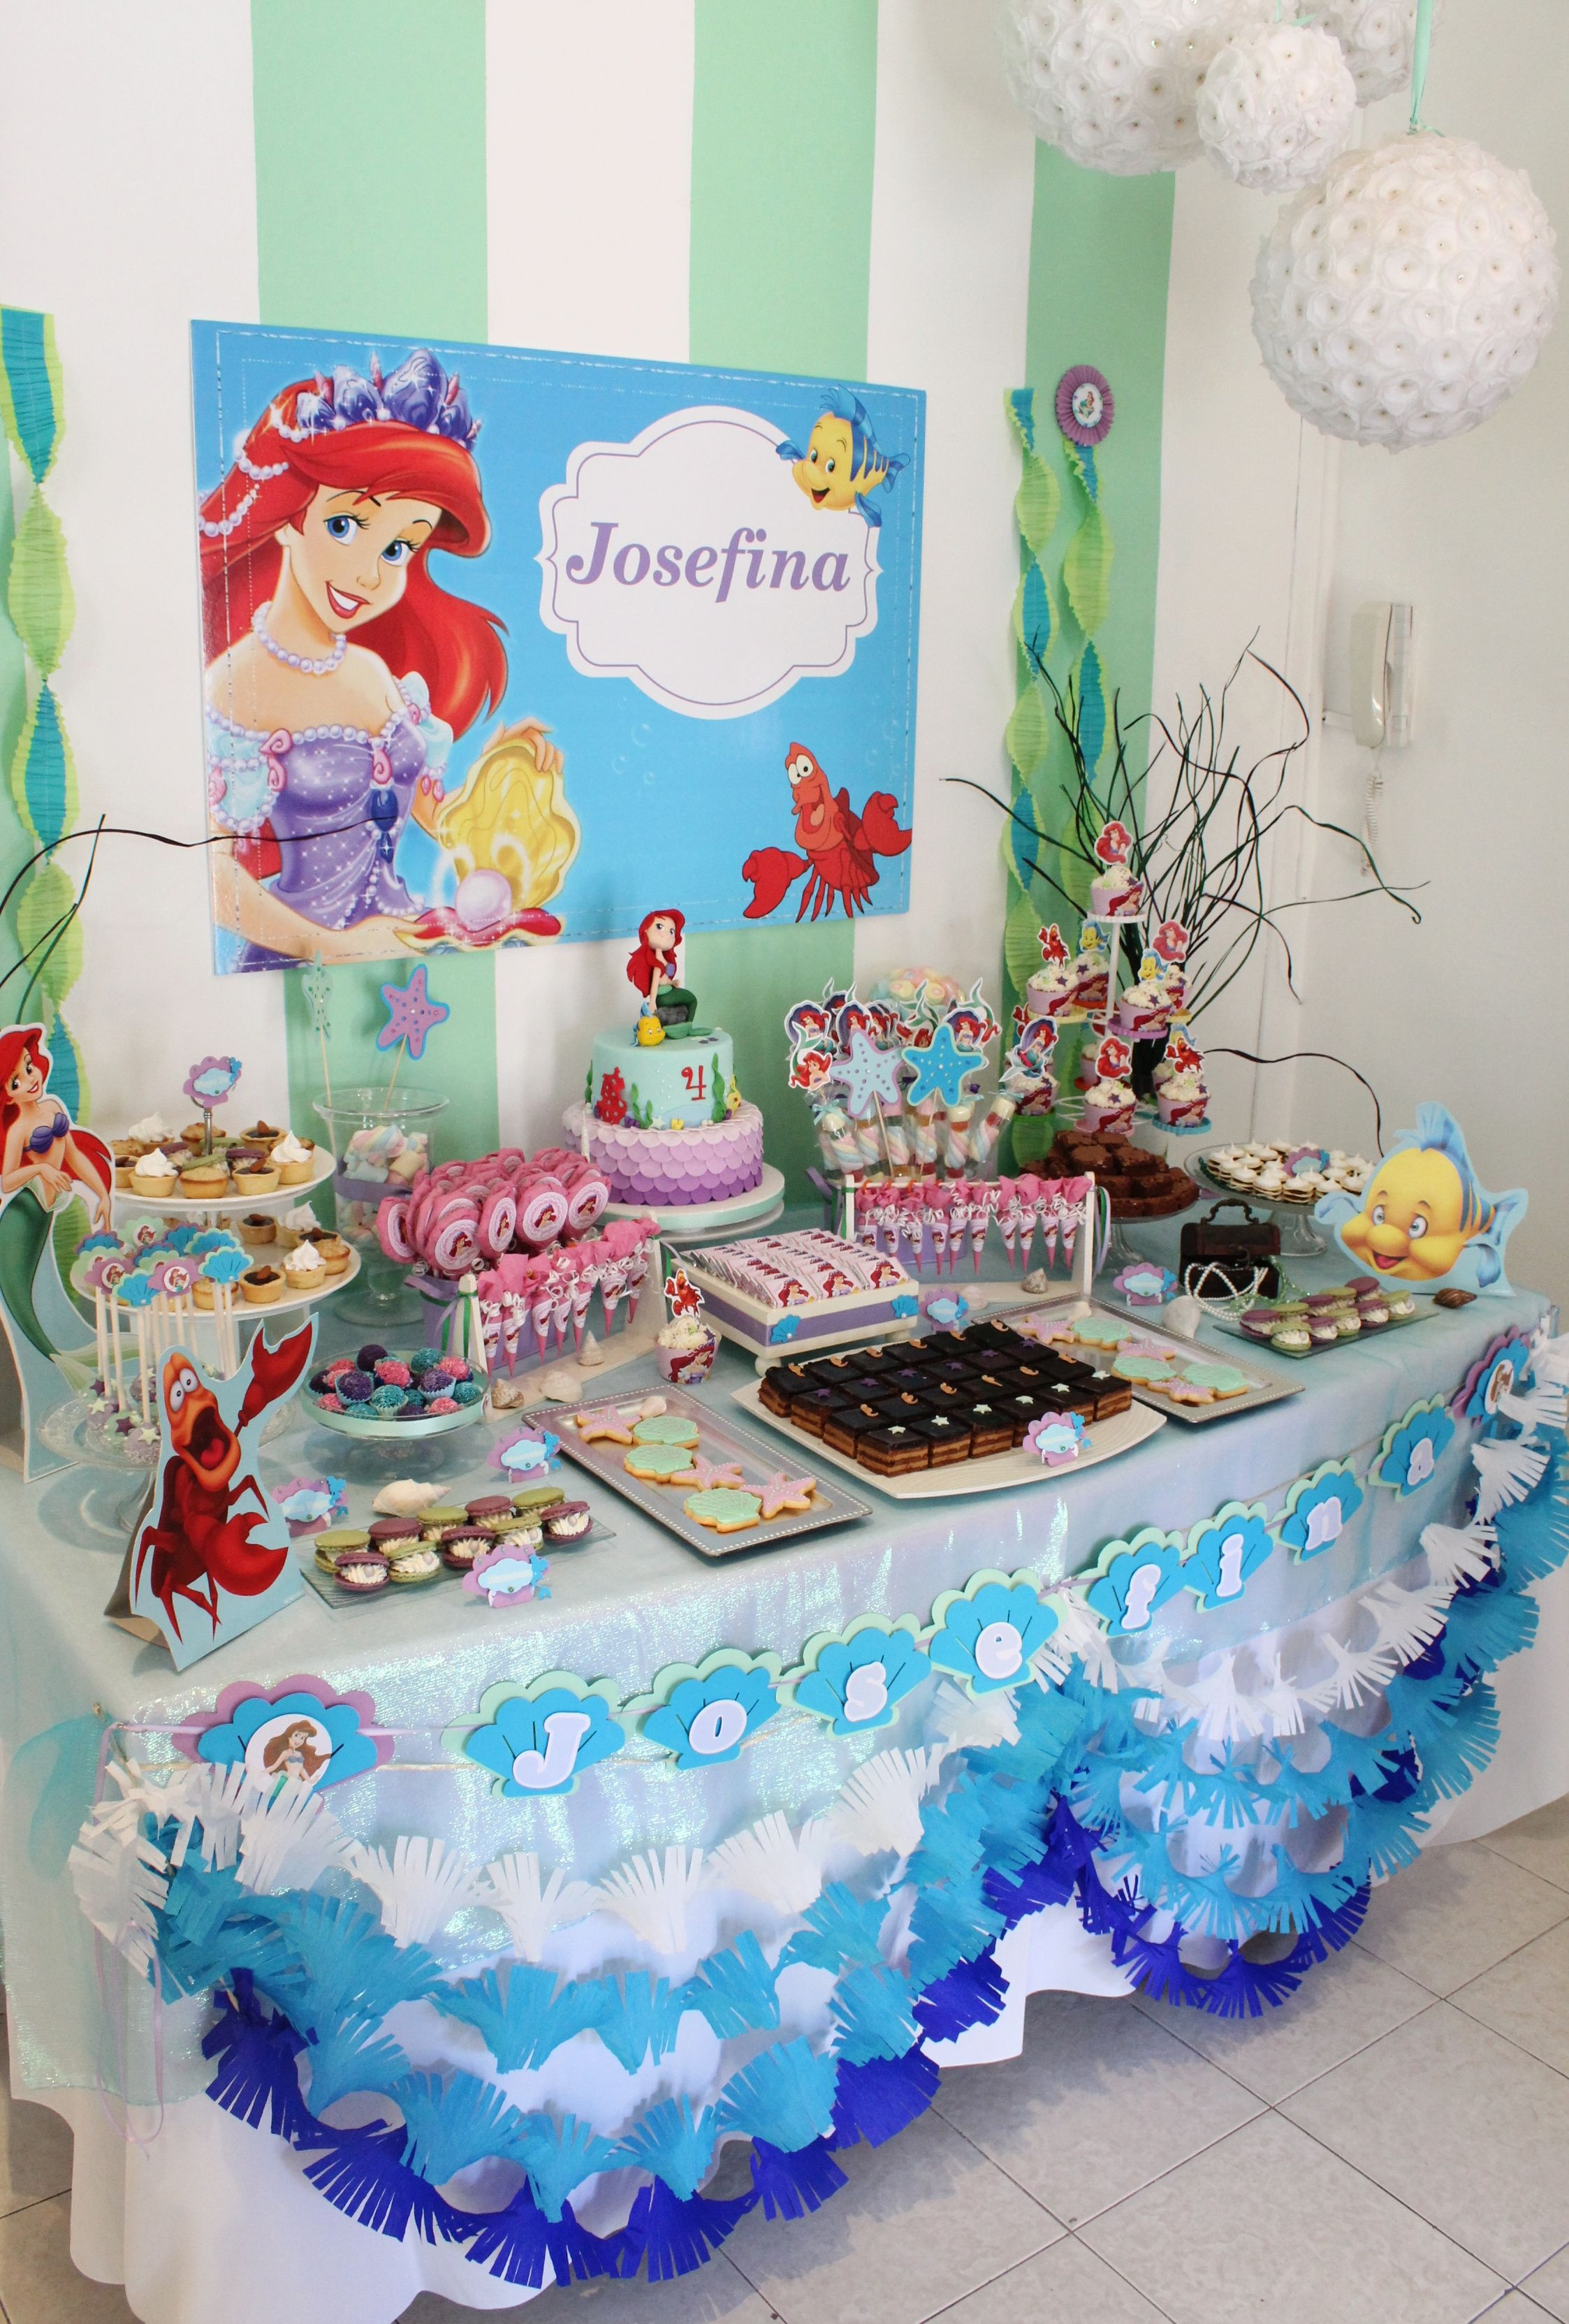 Little Mermaid Sweet Table by Violeta Glace | Keeks\'s Bday ideas ...